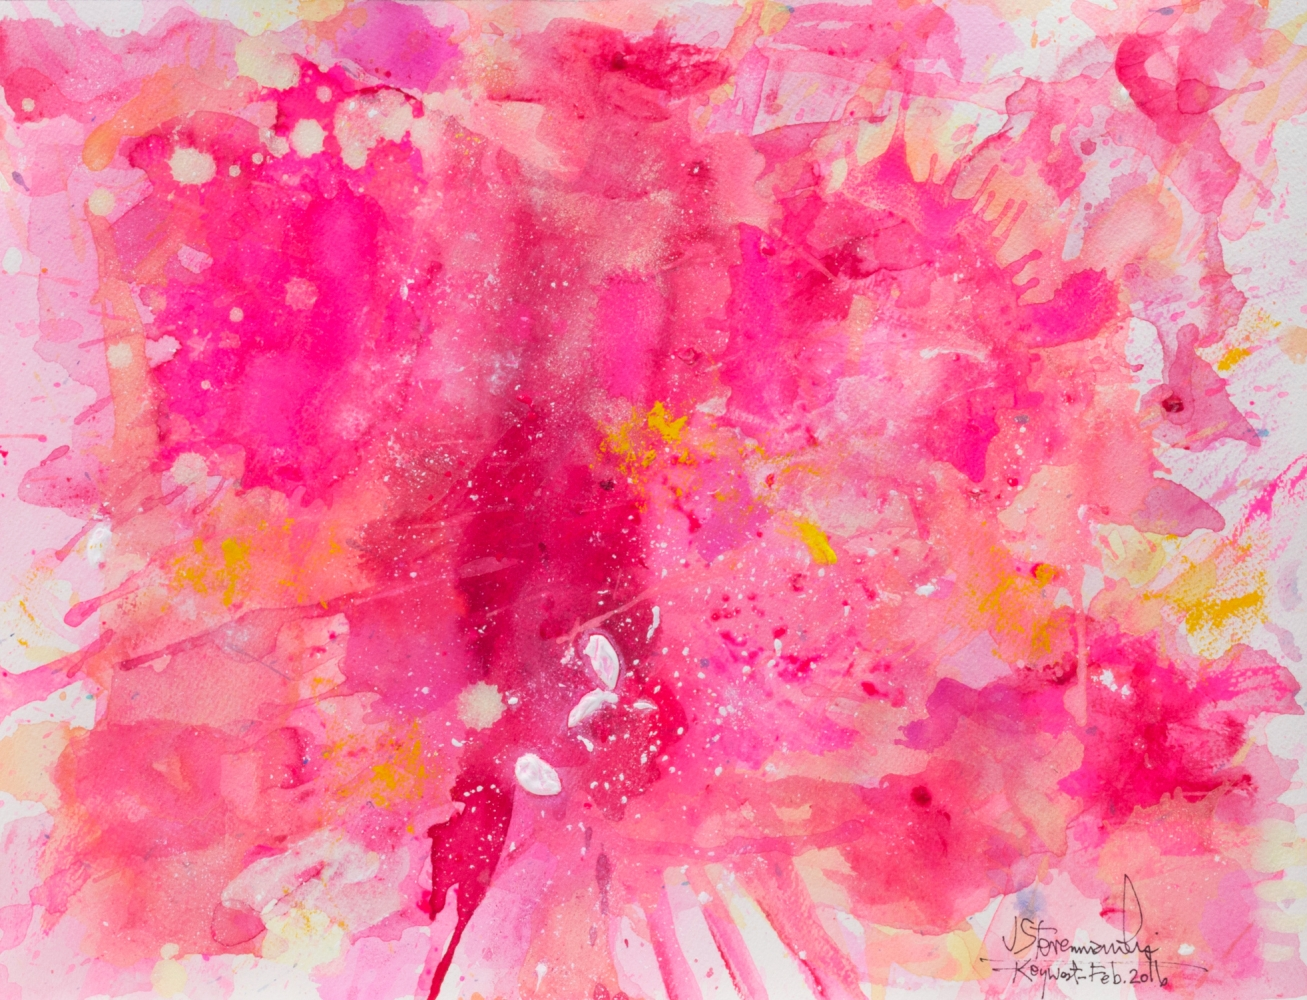 J. Steven Manolis-Flamingo-Key West, 1832-2016-1216.05, watercolor, gouache and acrylic painting on Arches paper, 12 x 16 inches, Pink Abstract Art, Tropical Watercolor paintings for sale at Manolis Projects Art Gallery, Miami, Fl